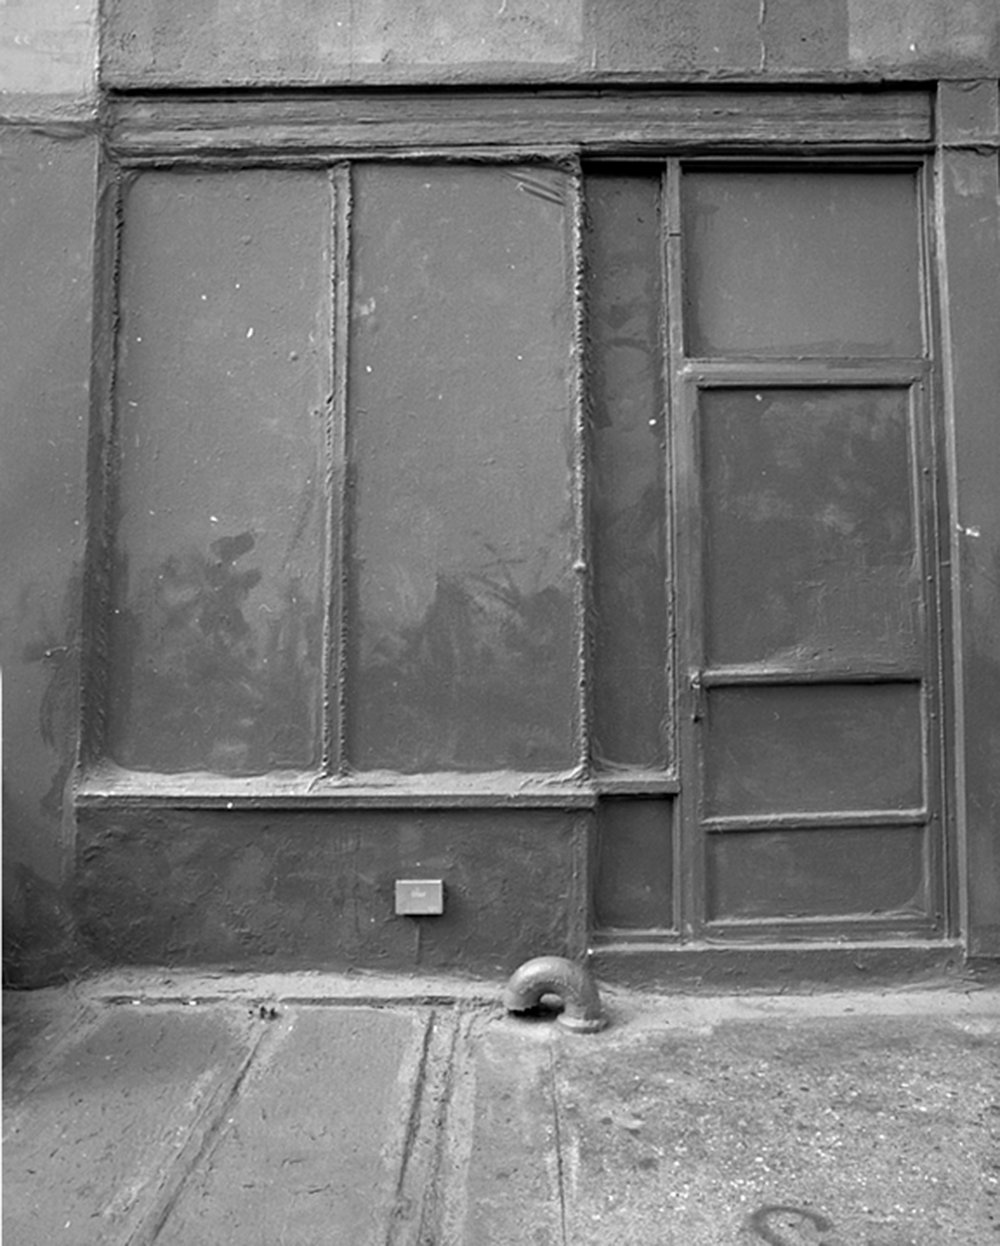 """Lorna Bauer,  Grey Is A Colour, Gray is a Color (Under-exposed) , 2012, gelatin silver print, 11"""" x 14"""" (28 x 35.5 cm)"""